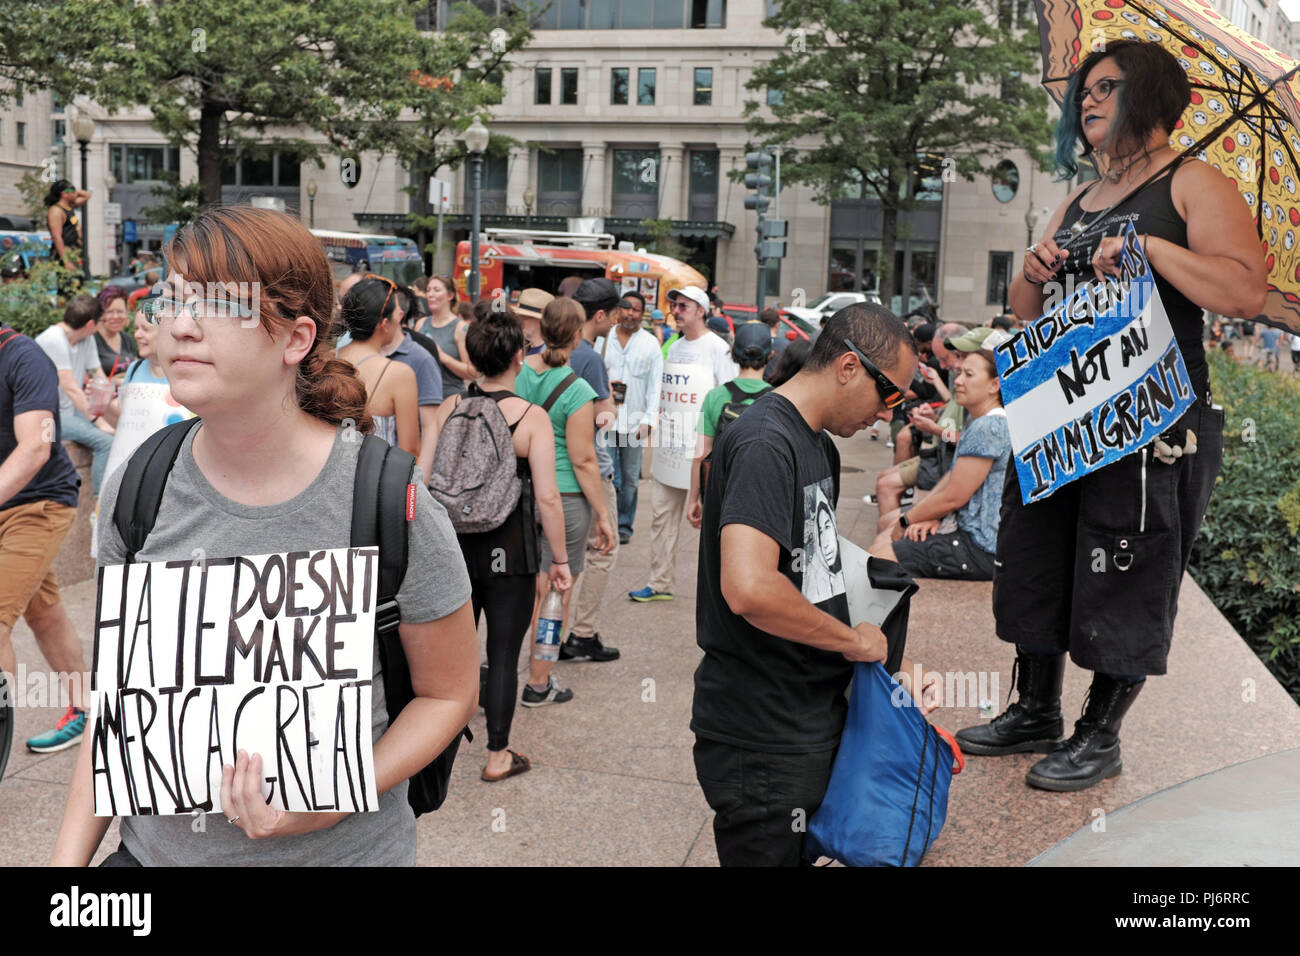 Hate Does Not Make America Great sign at rally in Freedom Park in Washington D.C. aimed at countering the alt-right rally in Lafayette Park - Stock Image